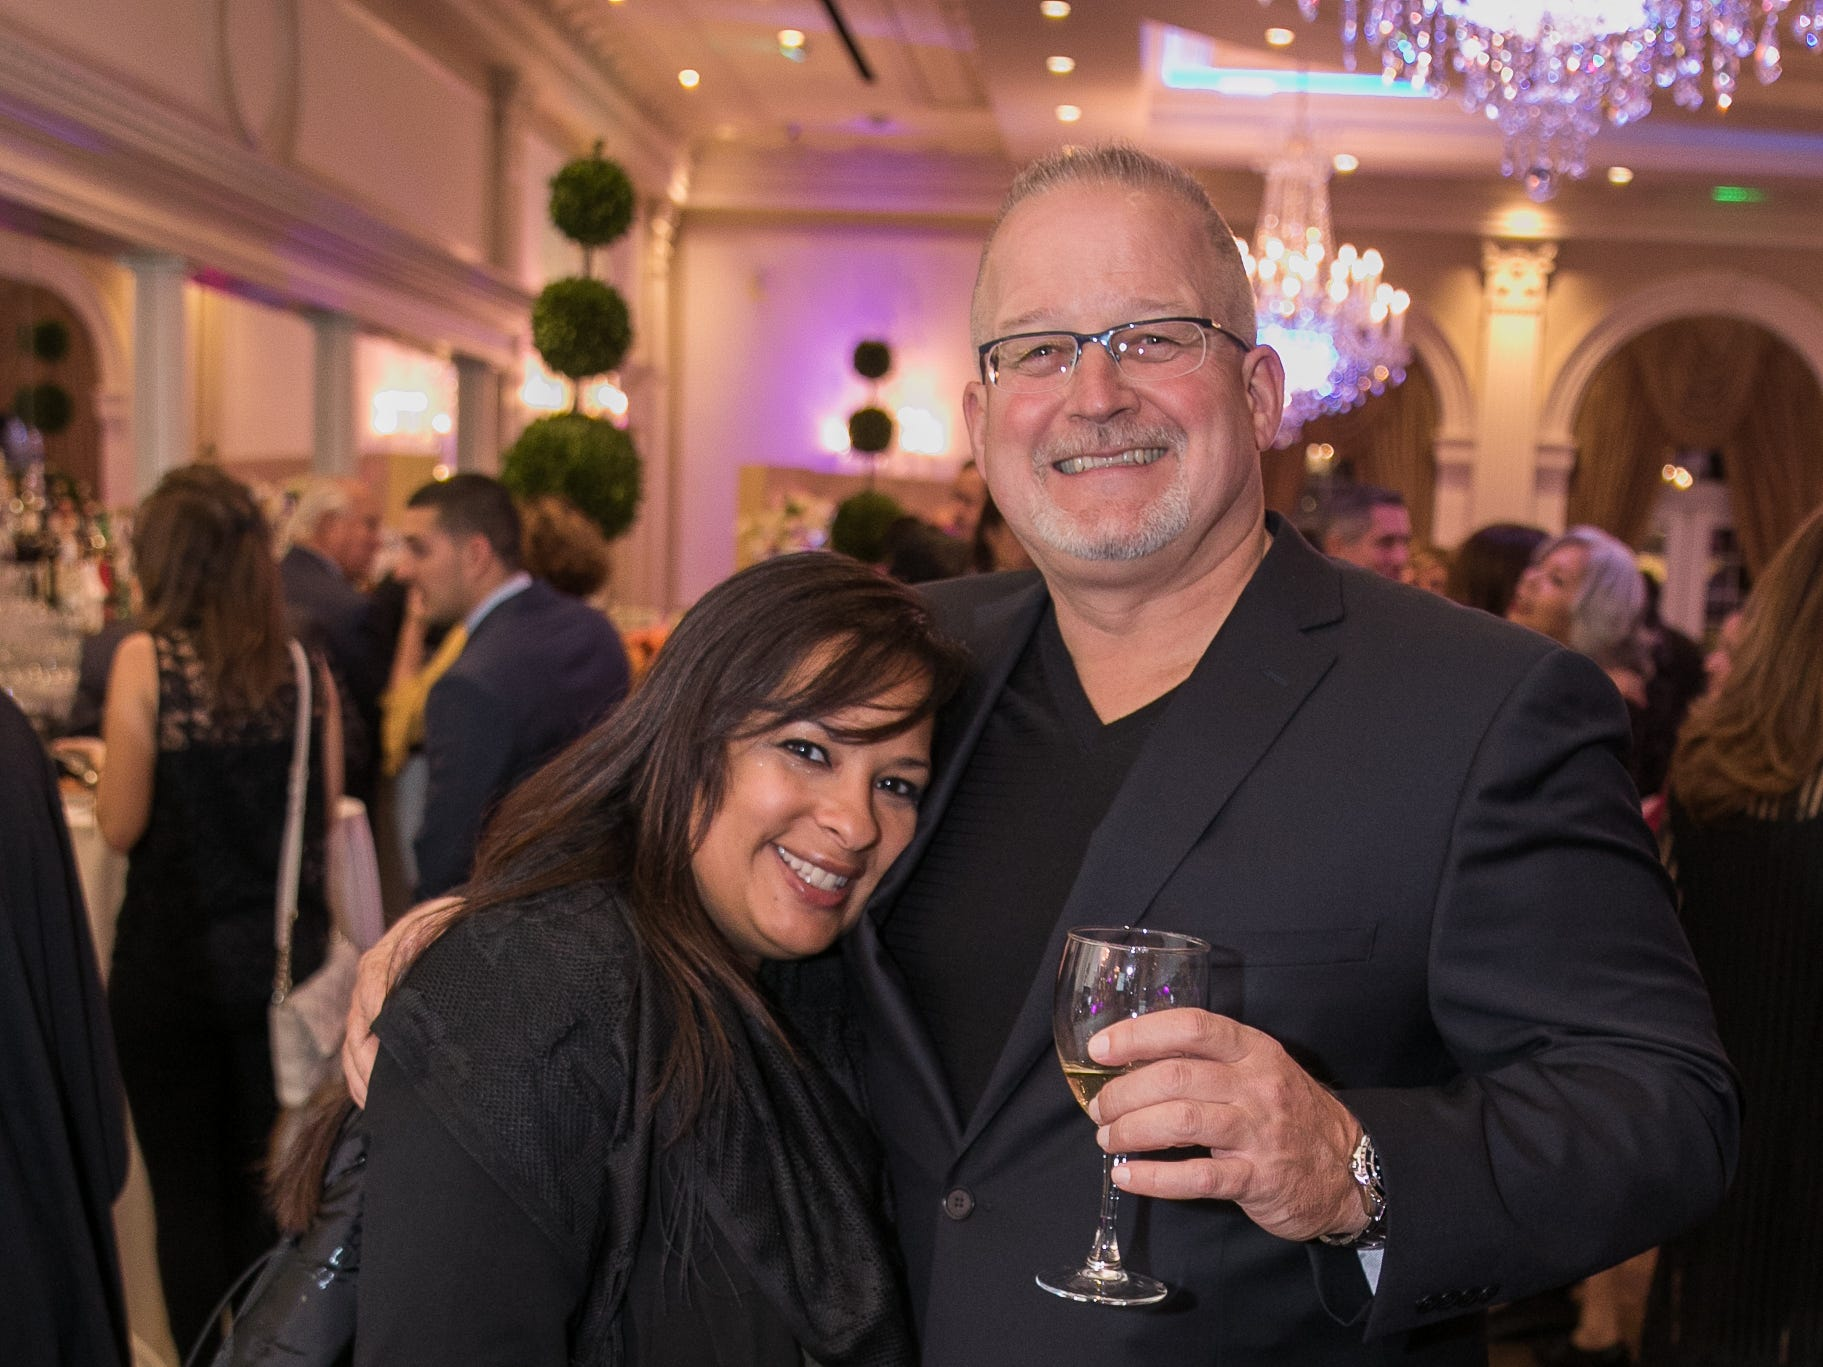 Jenny Pena, Art Mantell. Bergen Family Center celebrated 120 years of service with dinner and a silent auction at Th e Rockleigh Country Club.11/1/2018